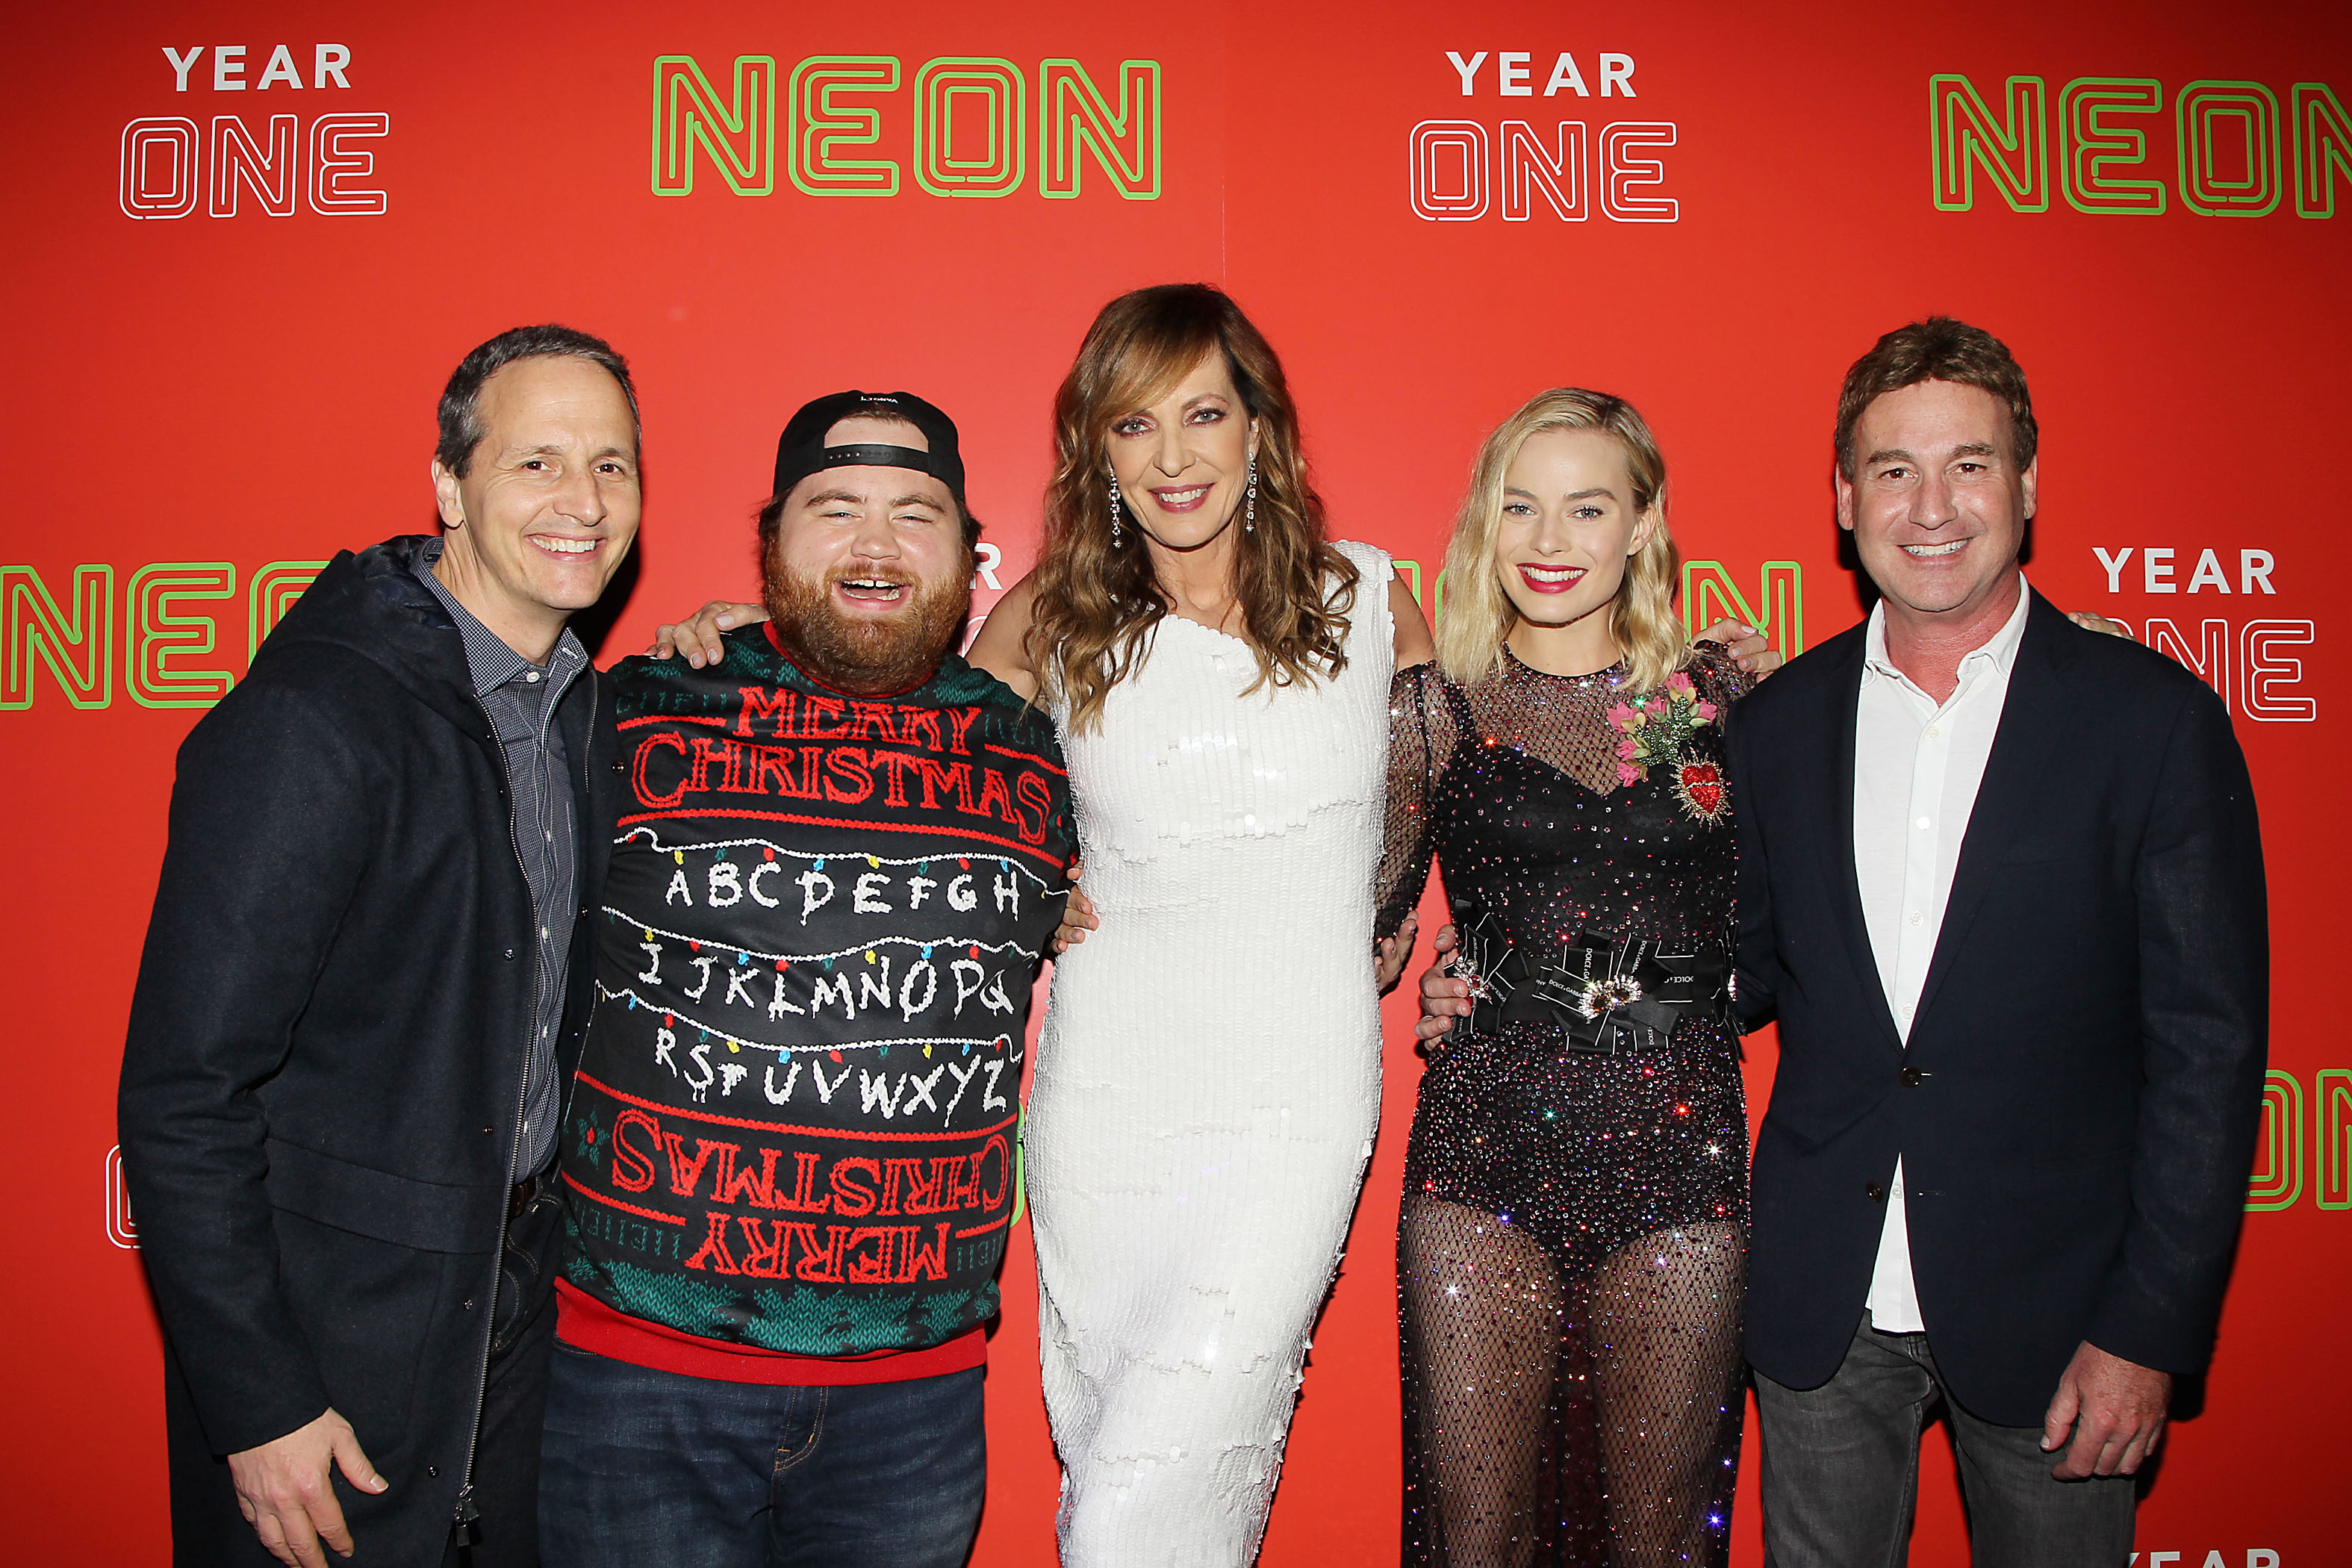 Tom Quinn, Paul Walter Hauser, Allison Janney, Margot Robbie and Steven RogersThe First Annual Neon Holiday Party Hosted by Margot Robbie and Allison Janney, New York, USA - 12 Dec 2017